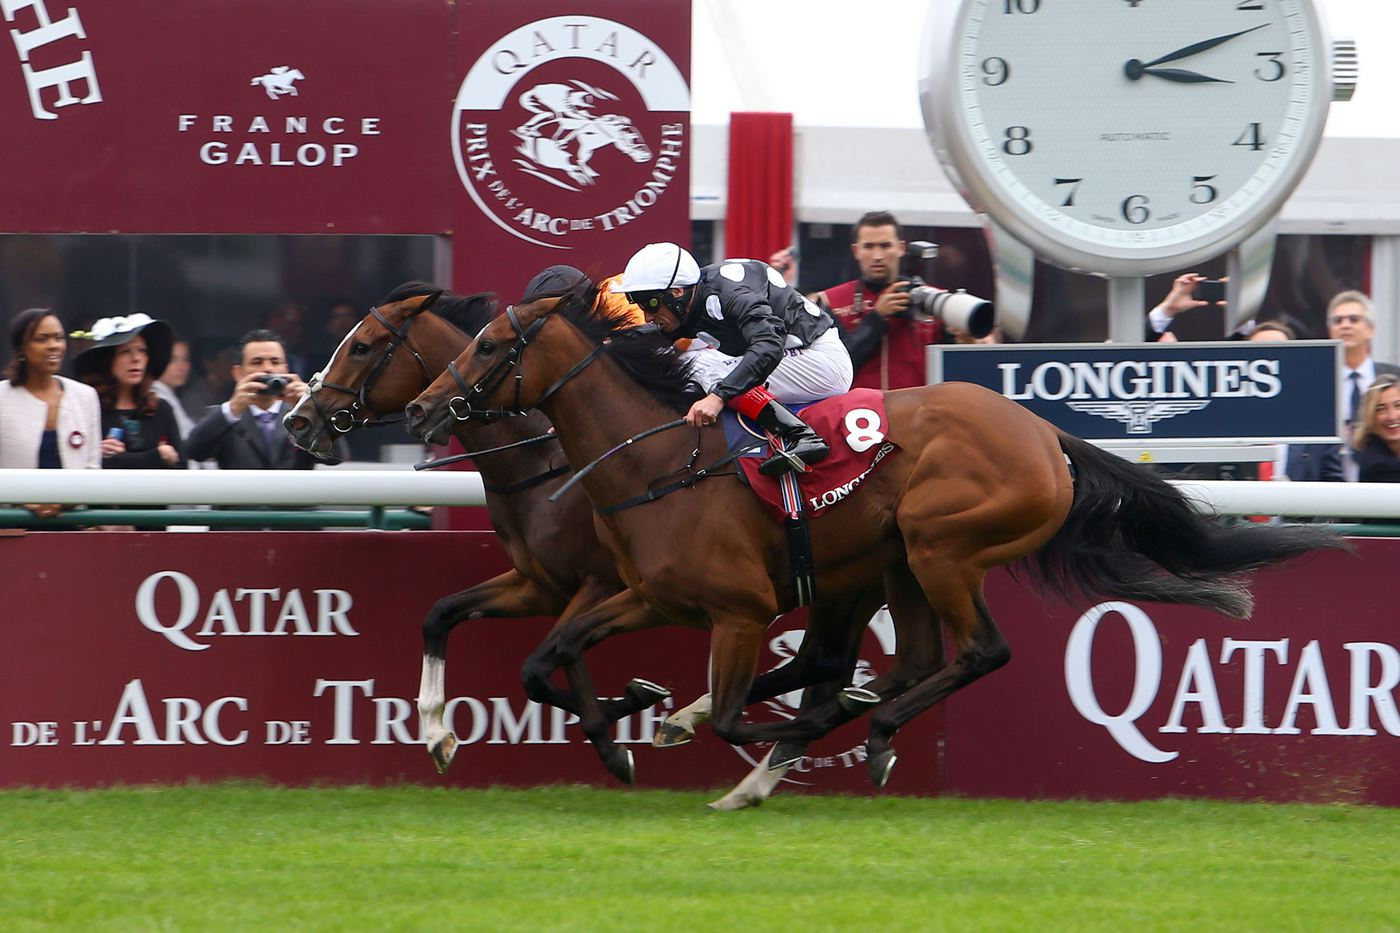 Longines Flat Racing Event: Qatar Prix de l'Arc de Triomphe : a thrilling race day timed by Longines  1